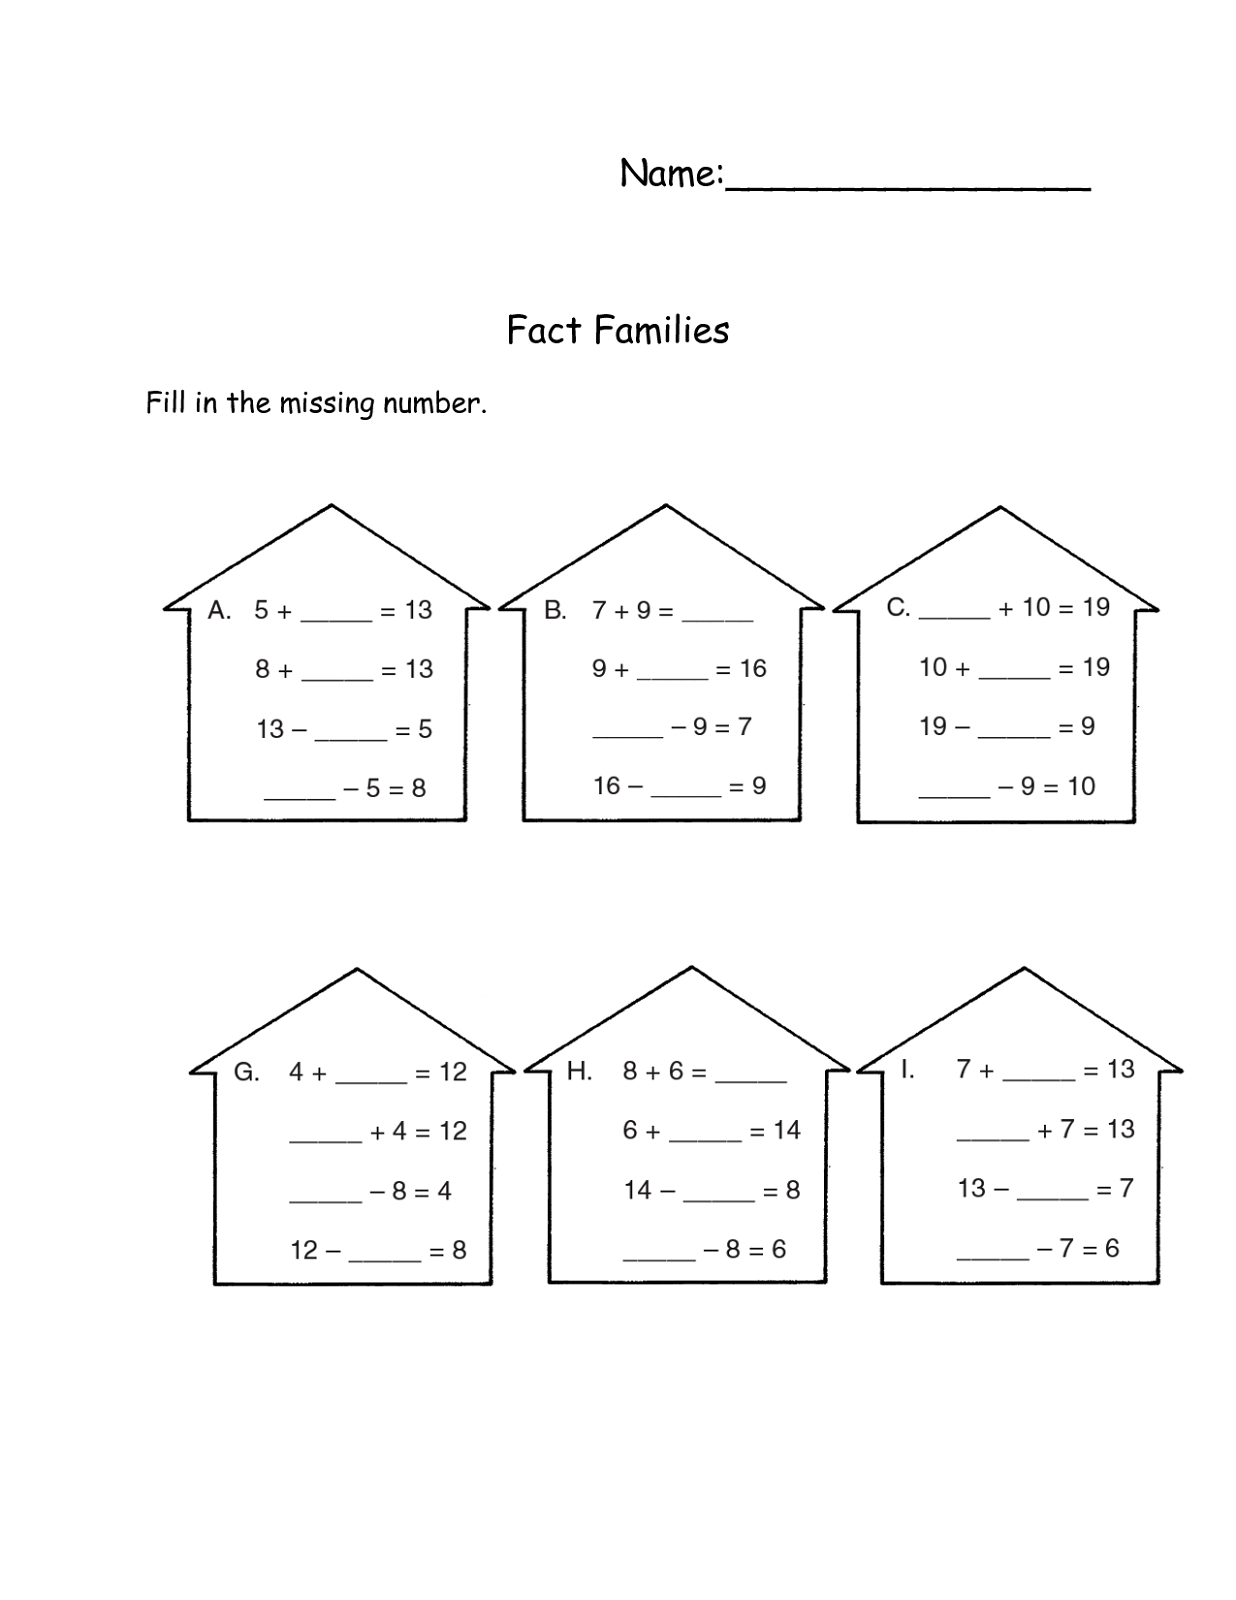 math worksheet : fact family worksheets printable  activity shelter : Addition Fact Family Worksheets